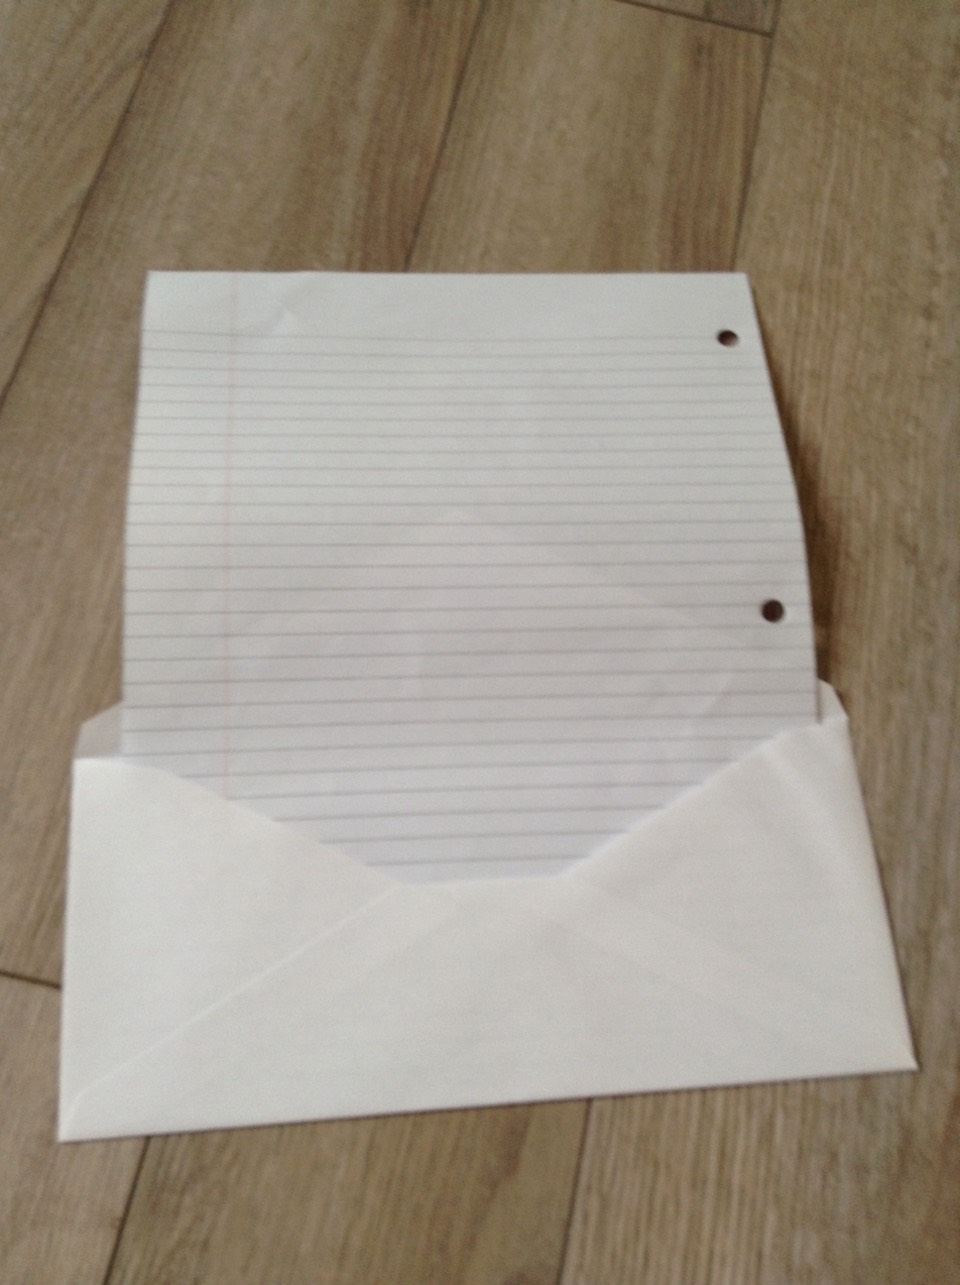 Place the line paper inside the envelope like so